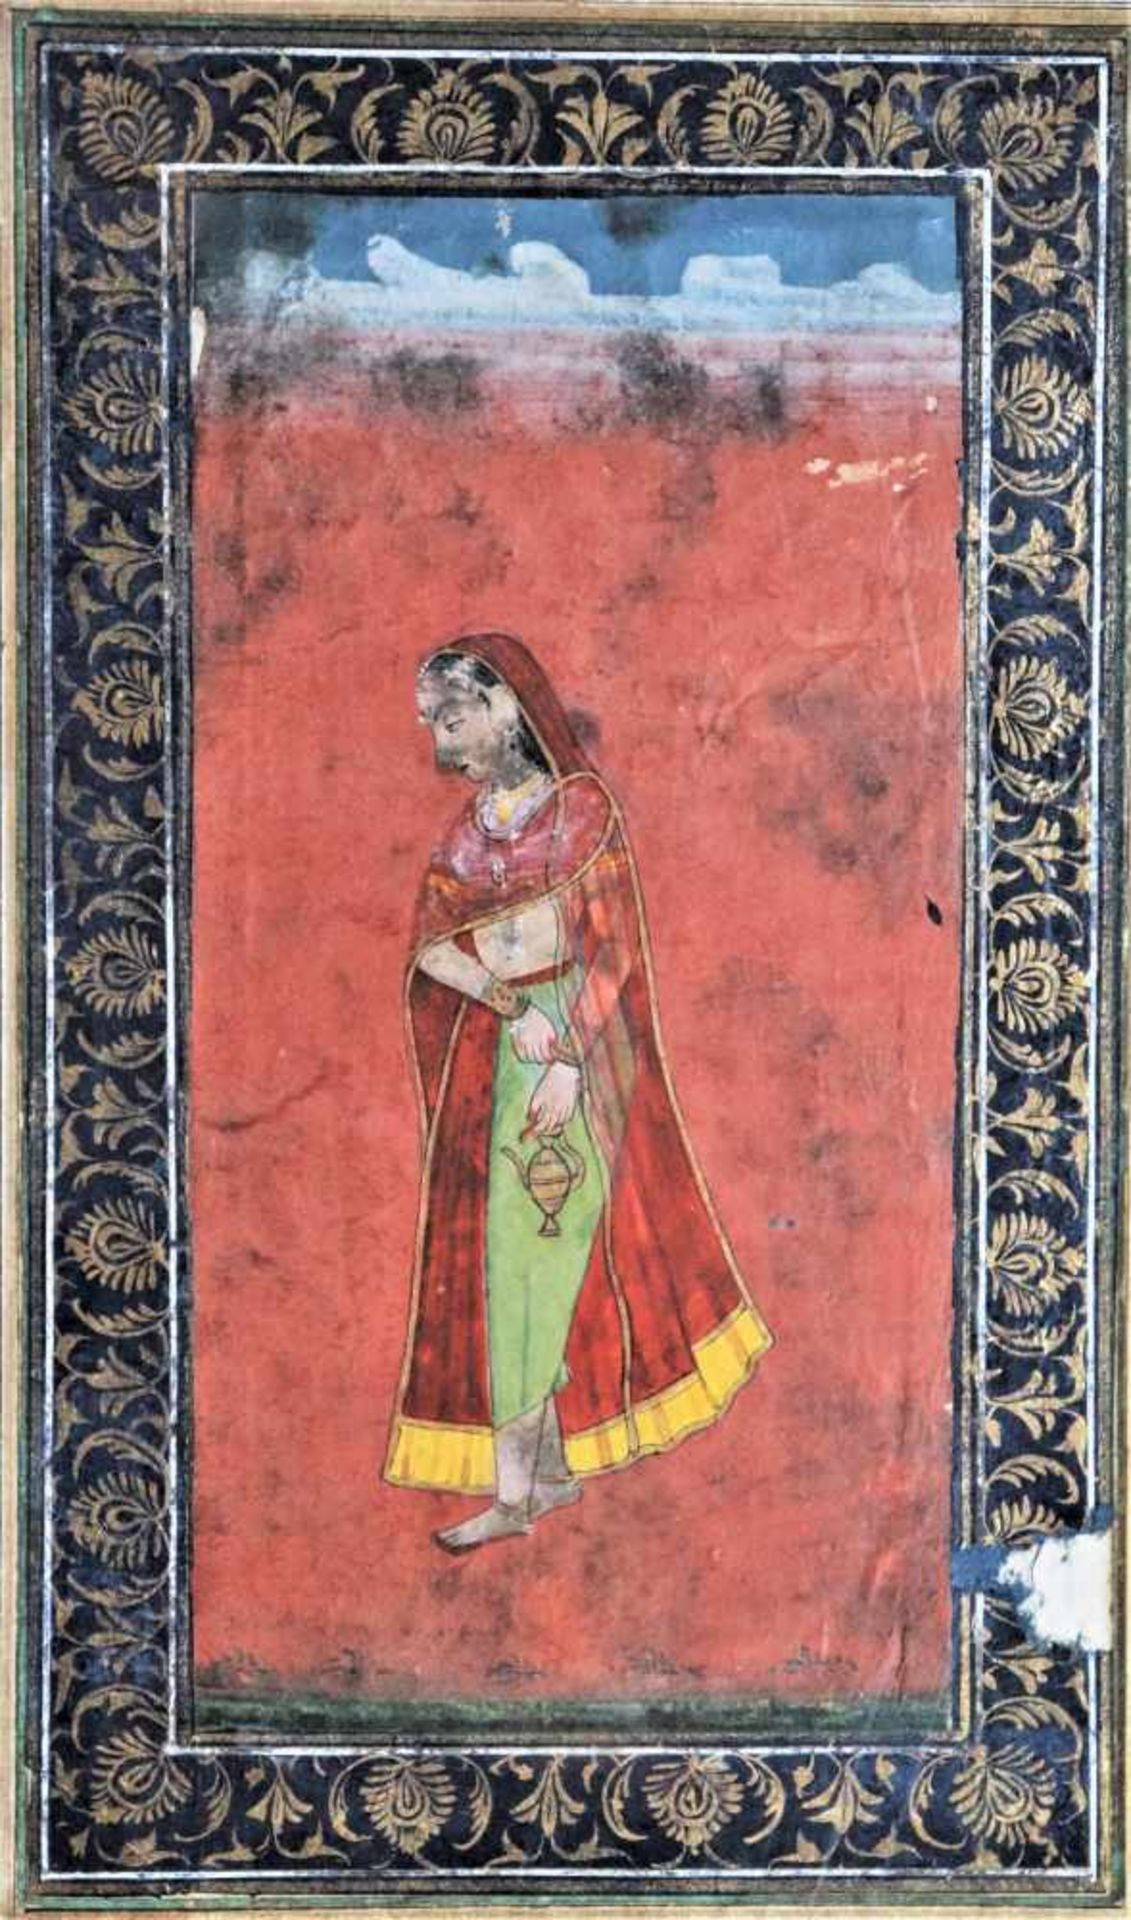 AN INDIAN MINIATURE PAINTING OF A LADY WITH LITTLE A WATER POTPainting with watercolors and gold - Image 3 of 3